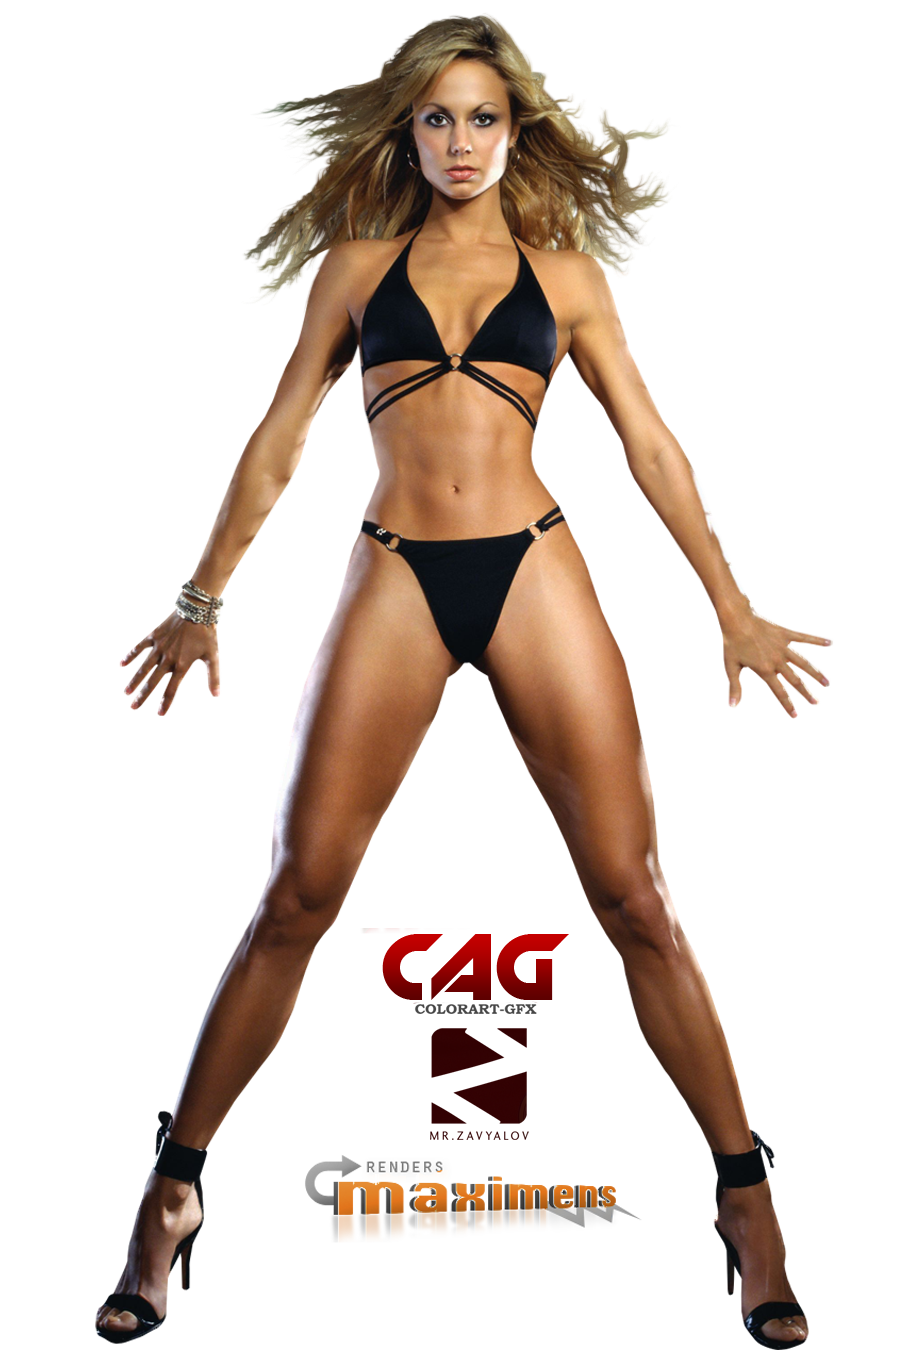 Stacy Keibler Stacy Keibler Photo Stacykeibler1 Png Stacy Keibler Stacy George Lopez